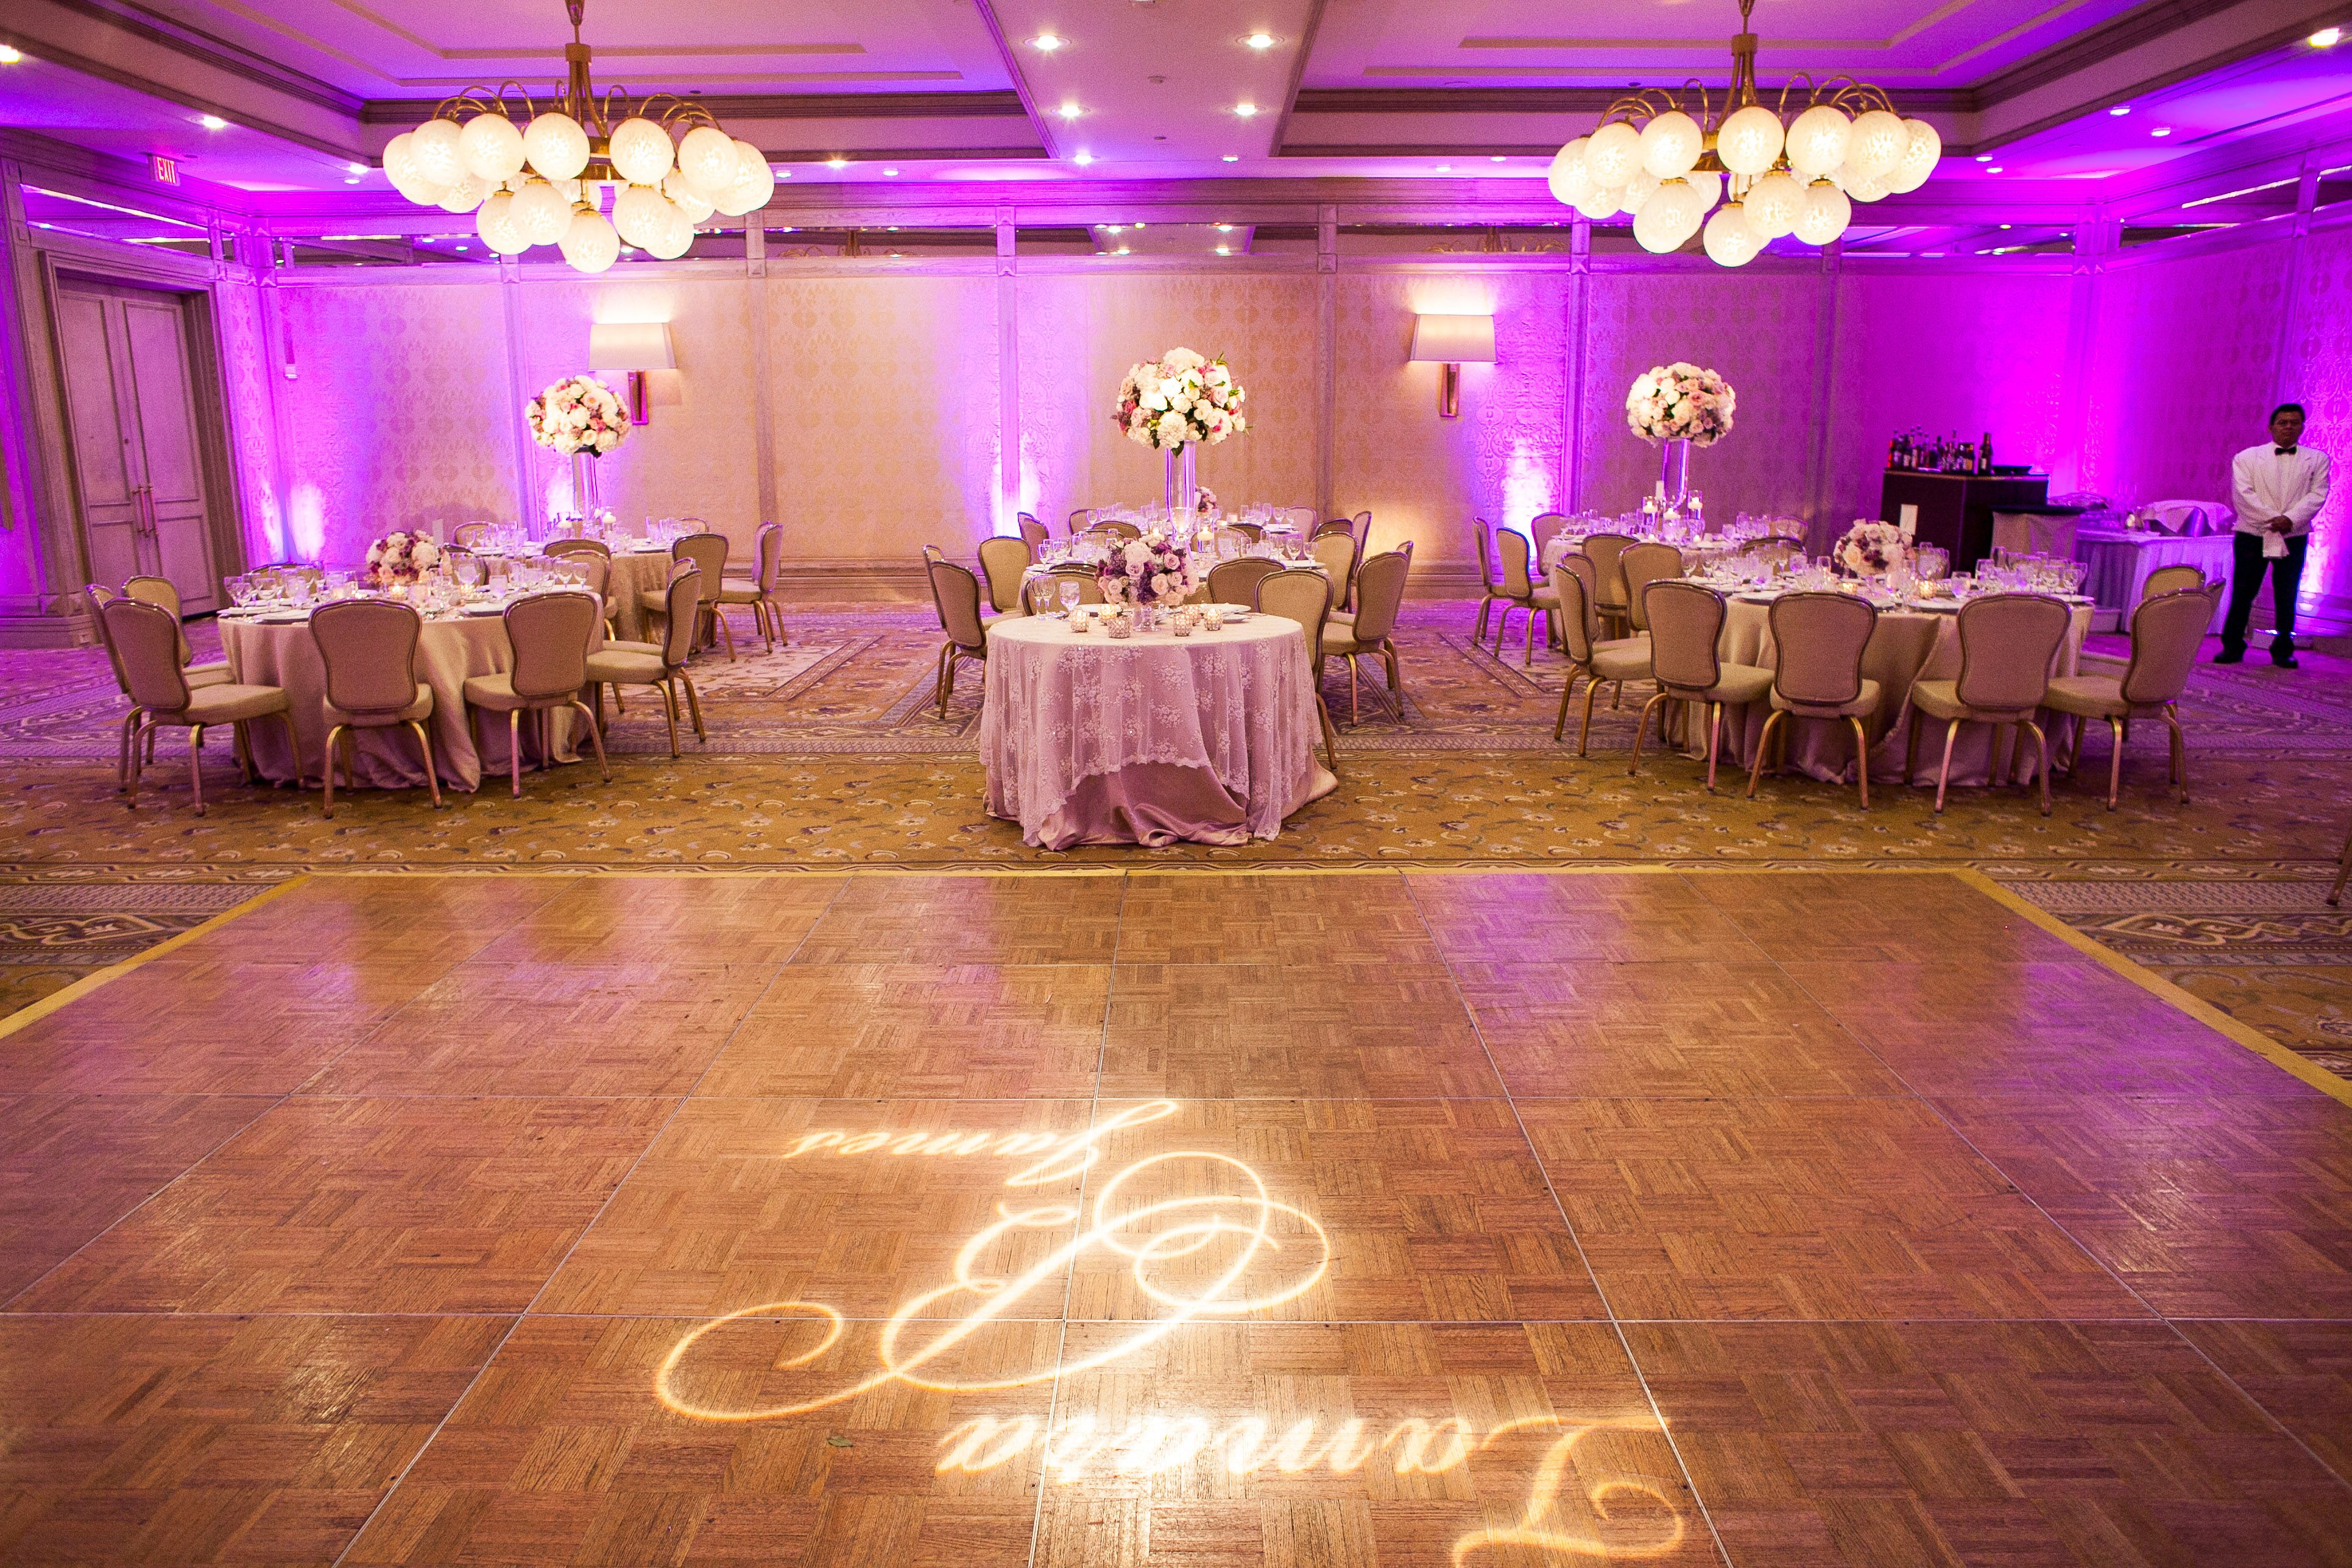 Tamara + James Spring Wedding | Ballroom Reception | Lavender ...